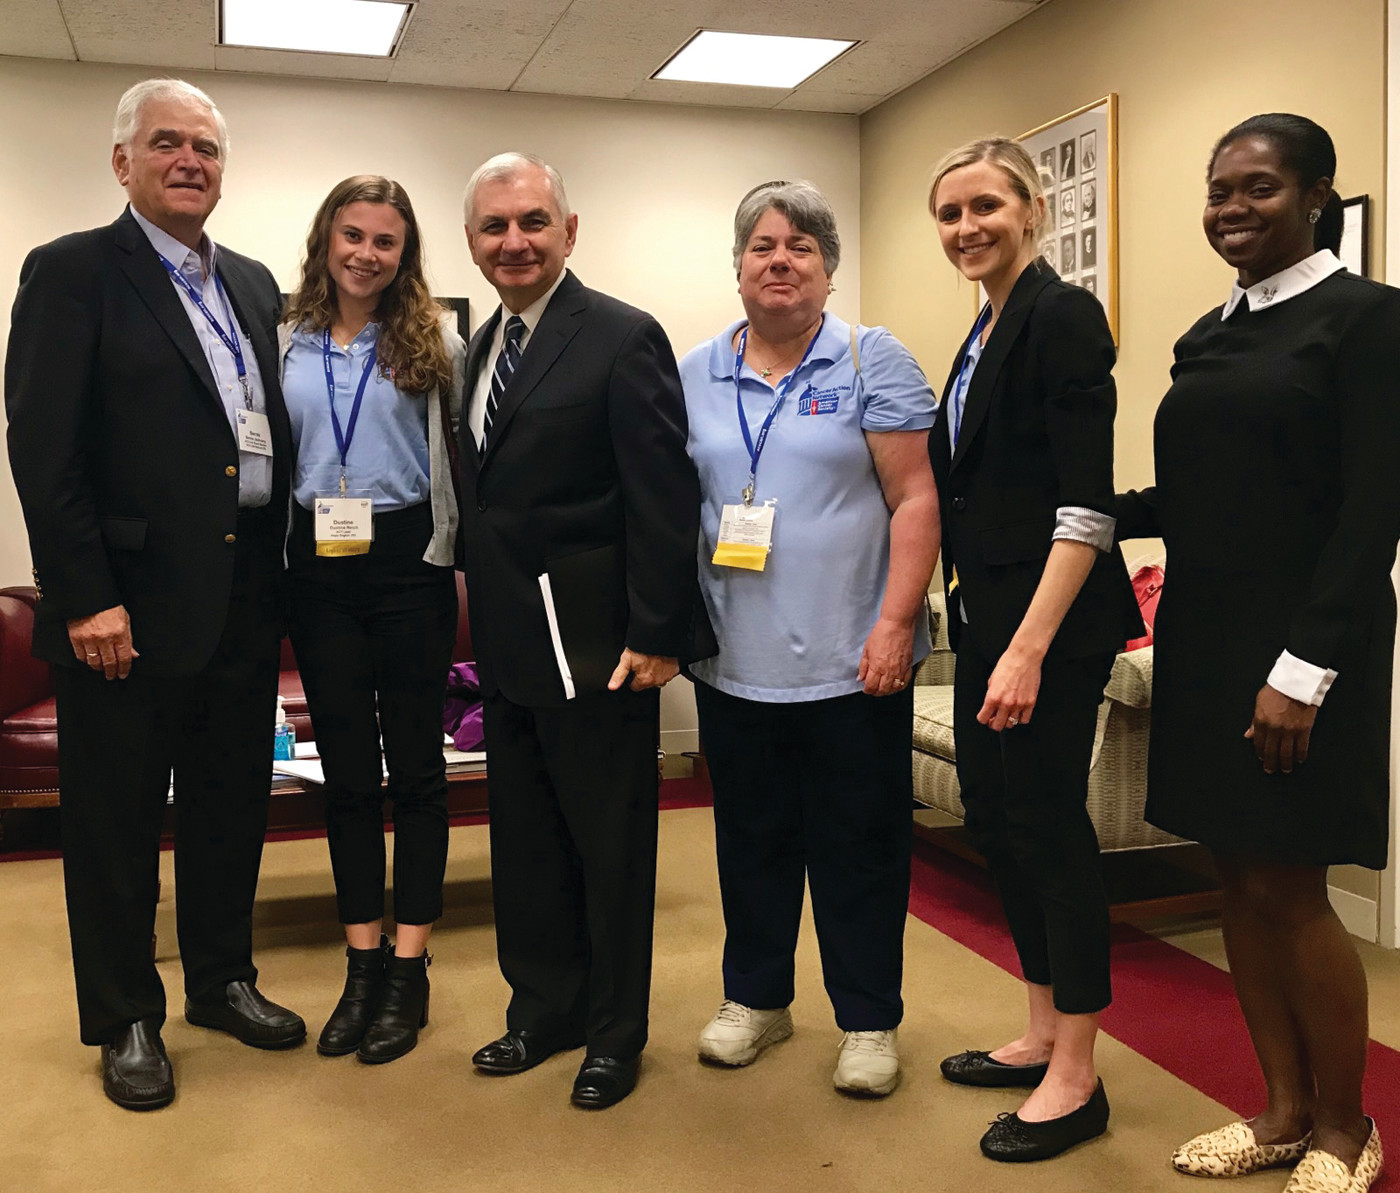 CHECKING IN: Ethel Ricci (to the right of Senator Reed) along with Cori Chandler, RI Grassroots Manager for ACSCAN, visited Washington D.C. to lobby for more funding to go towards cancer research from last Sunday to this past Wednesday.